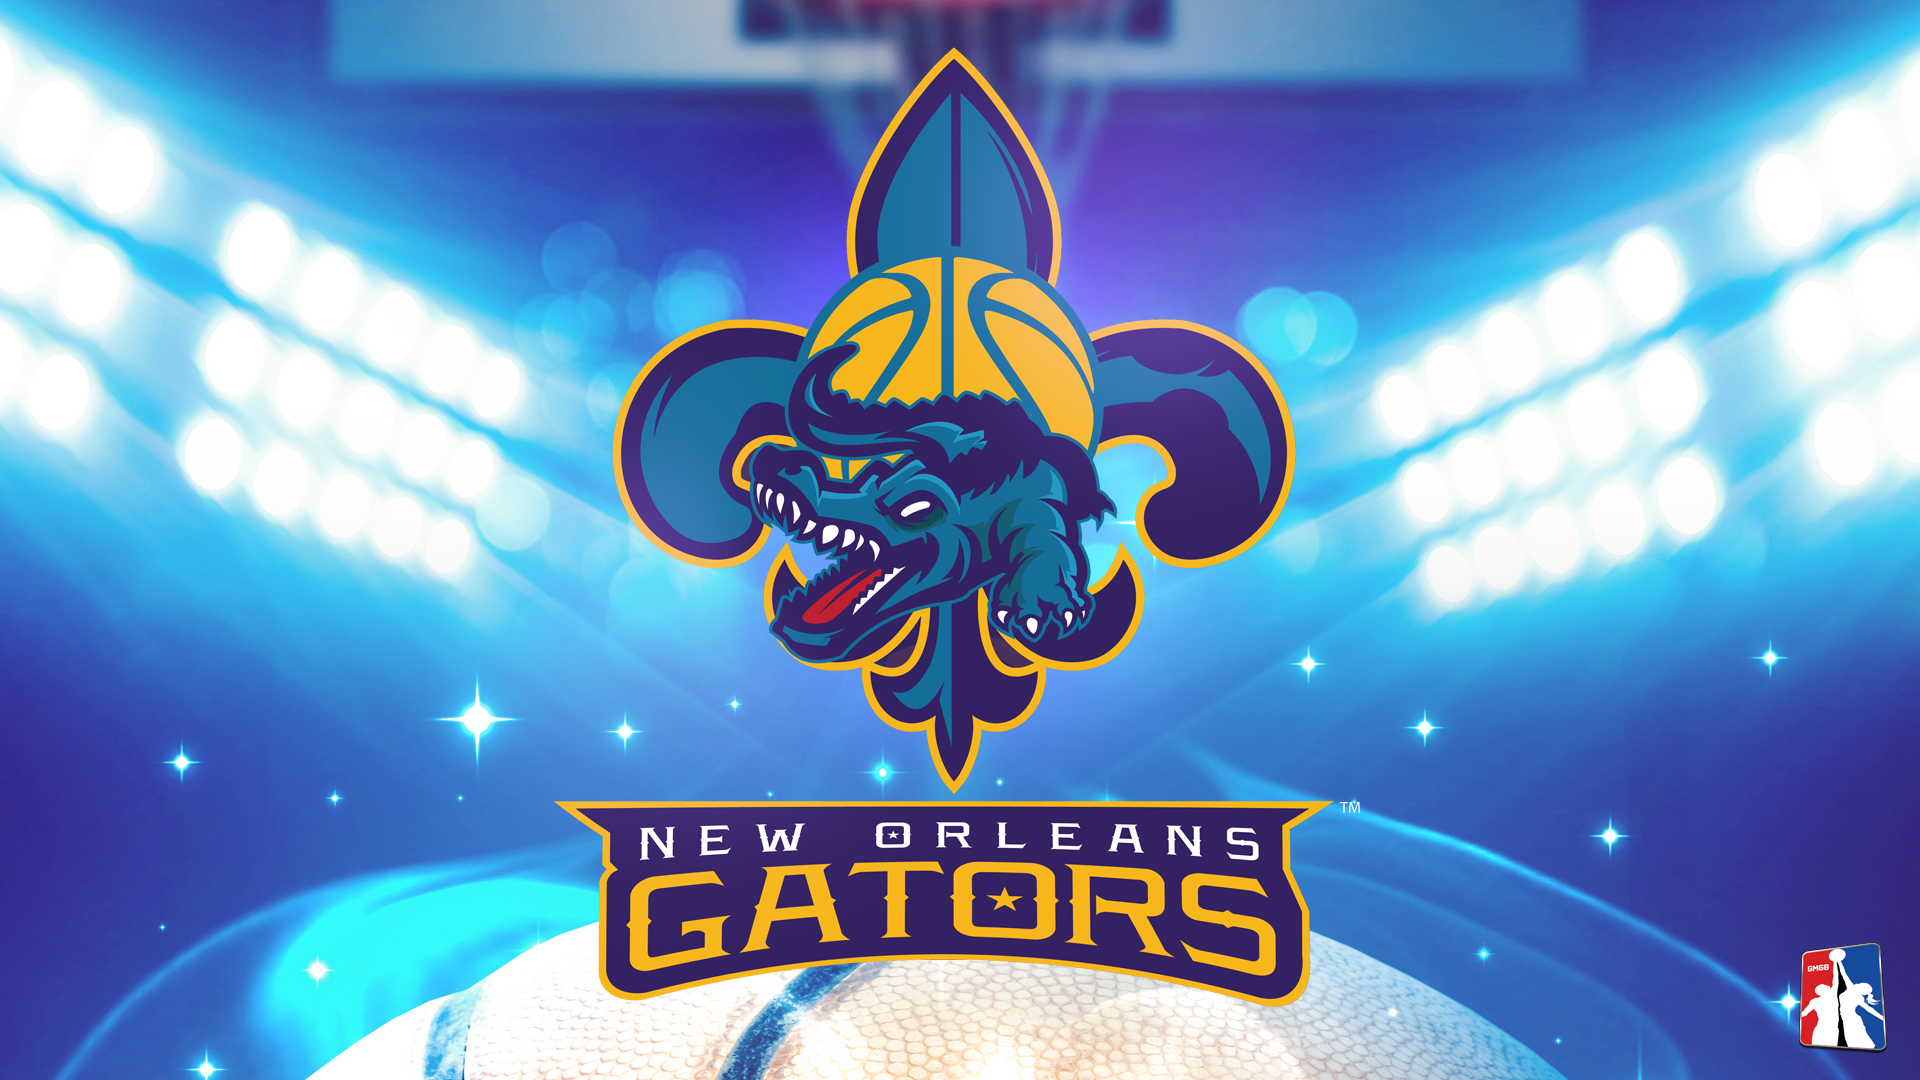 8605cf683 Many business people and celebrities have their eyes on the new  professional basketball franchise in New Orleans. But today